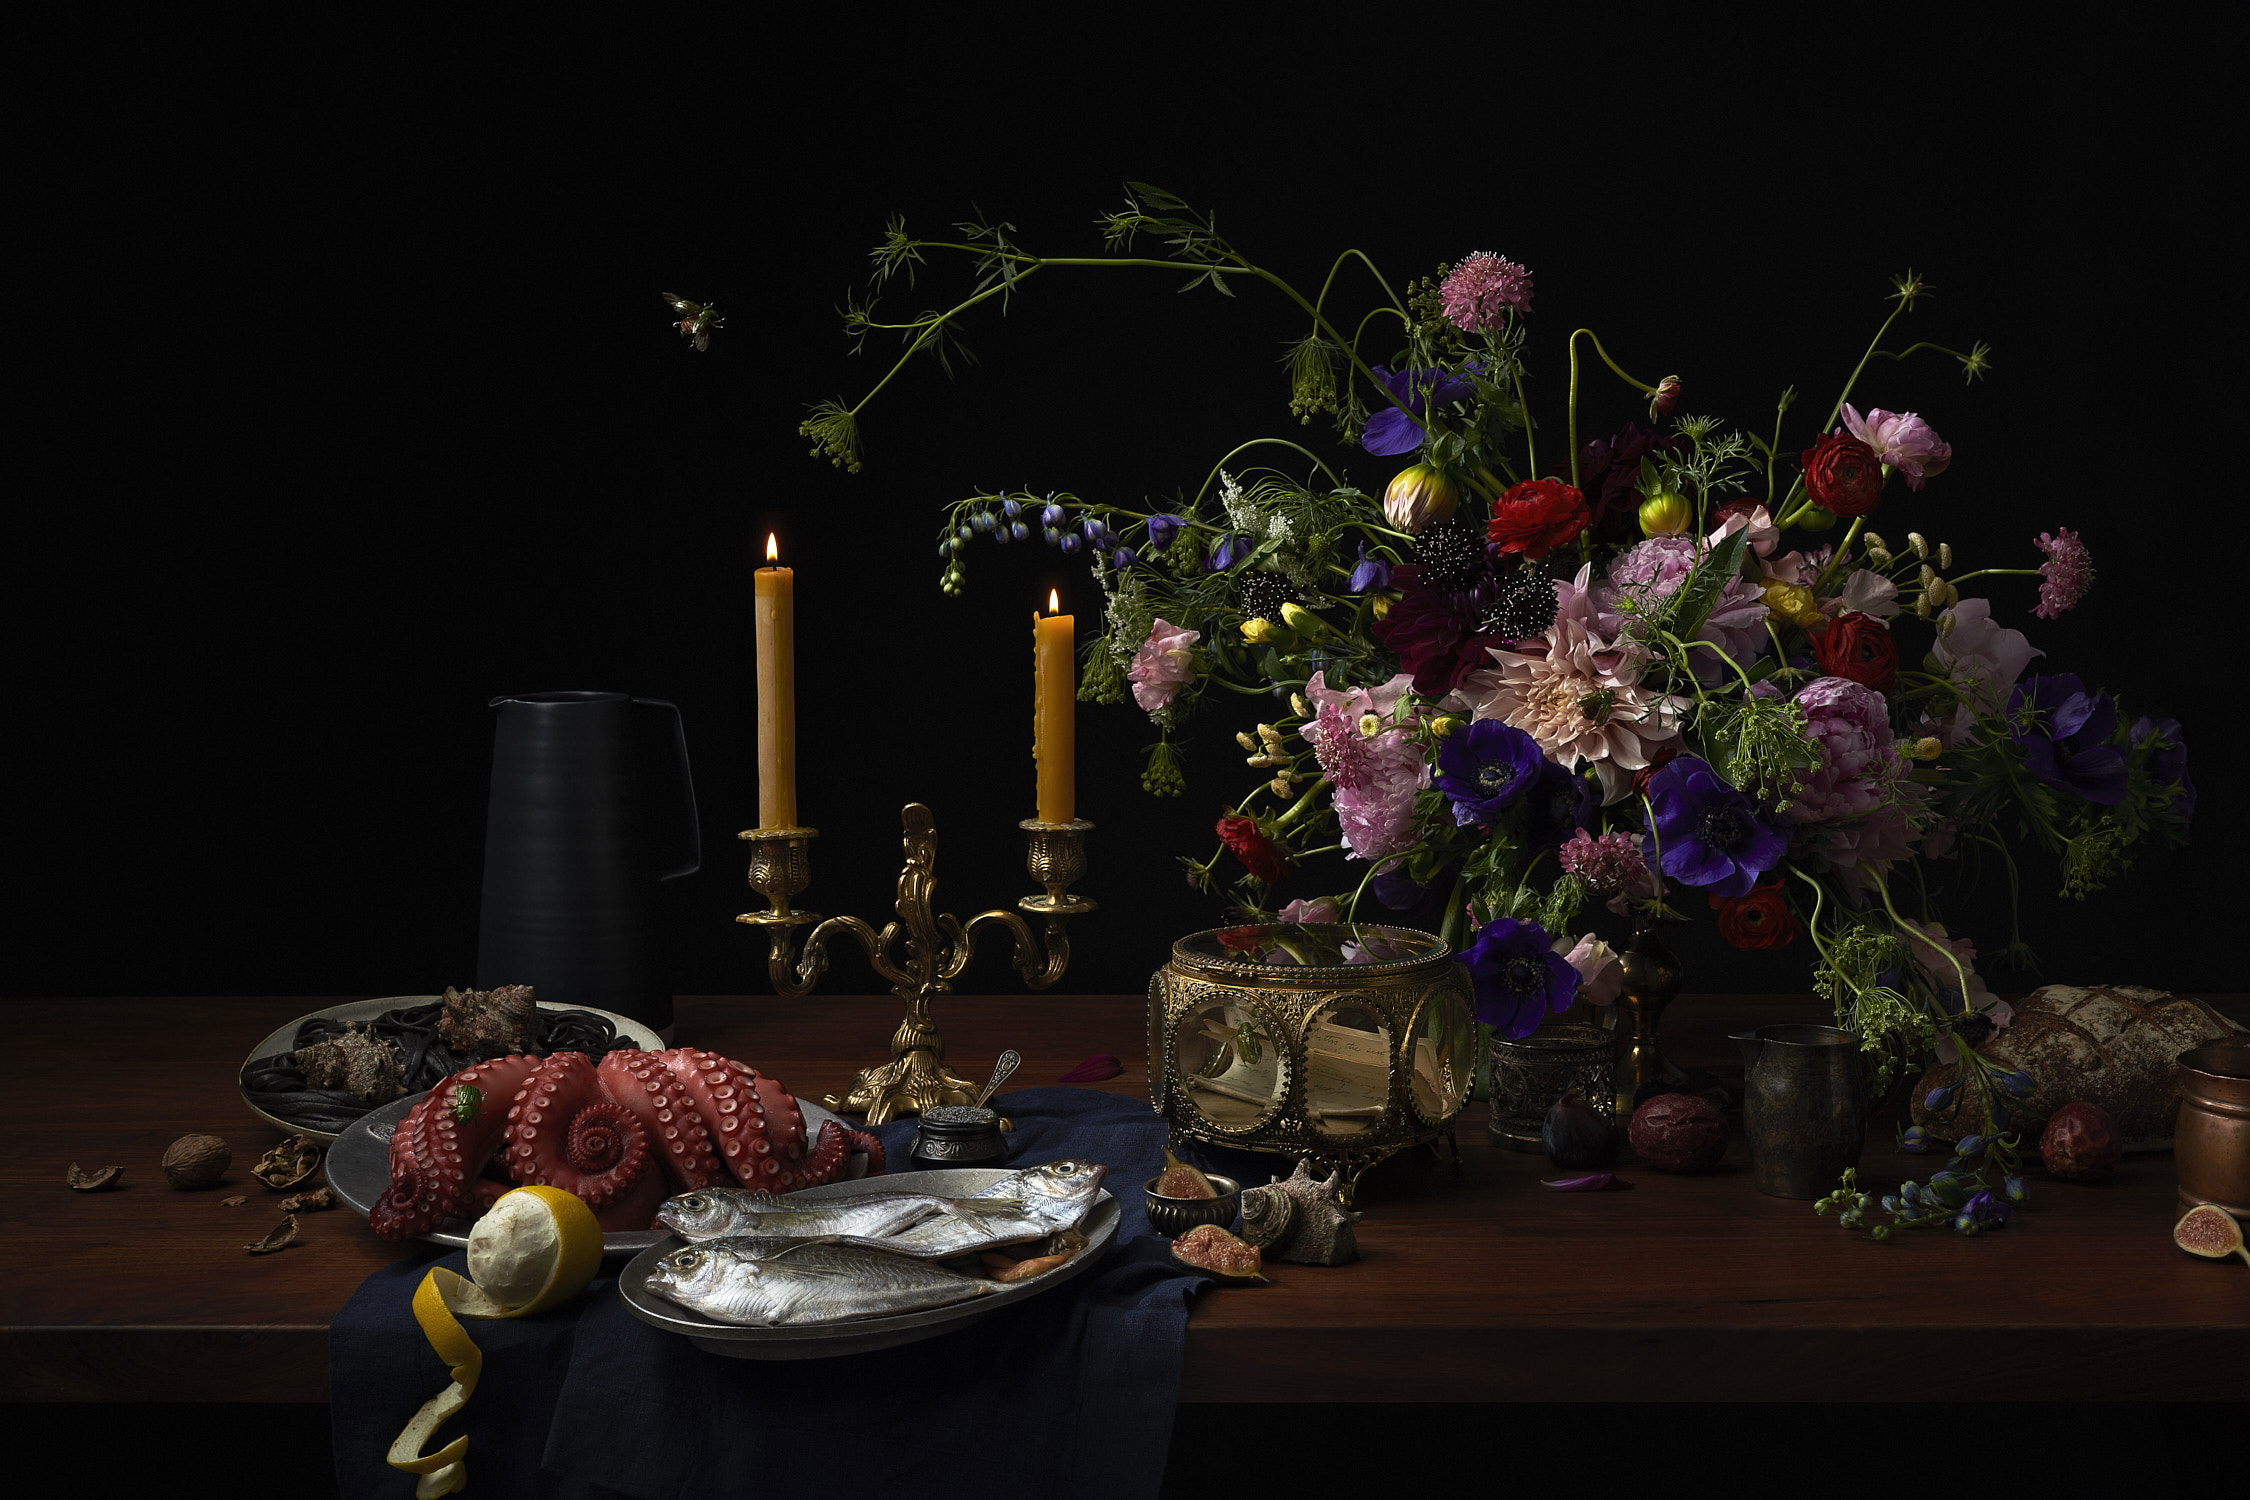 Renaissance still life painting photography by Jessica Stewart Prop Stylist Specializing in still imagery and Styling